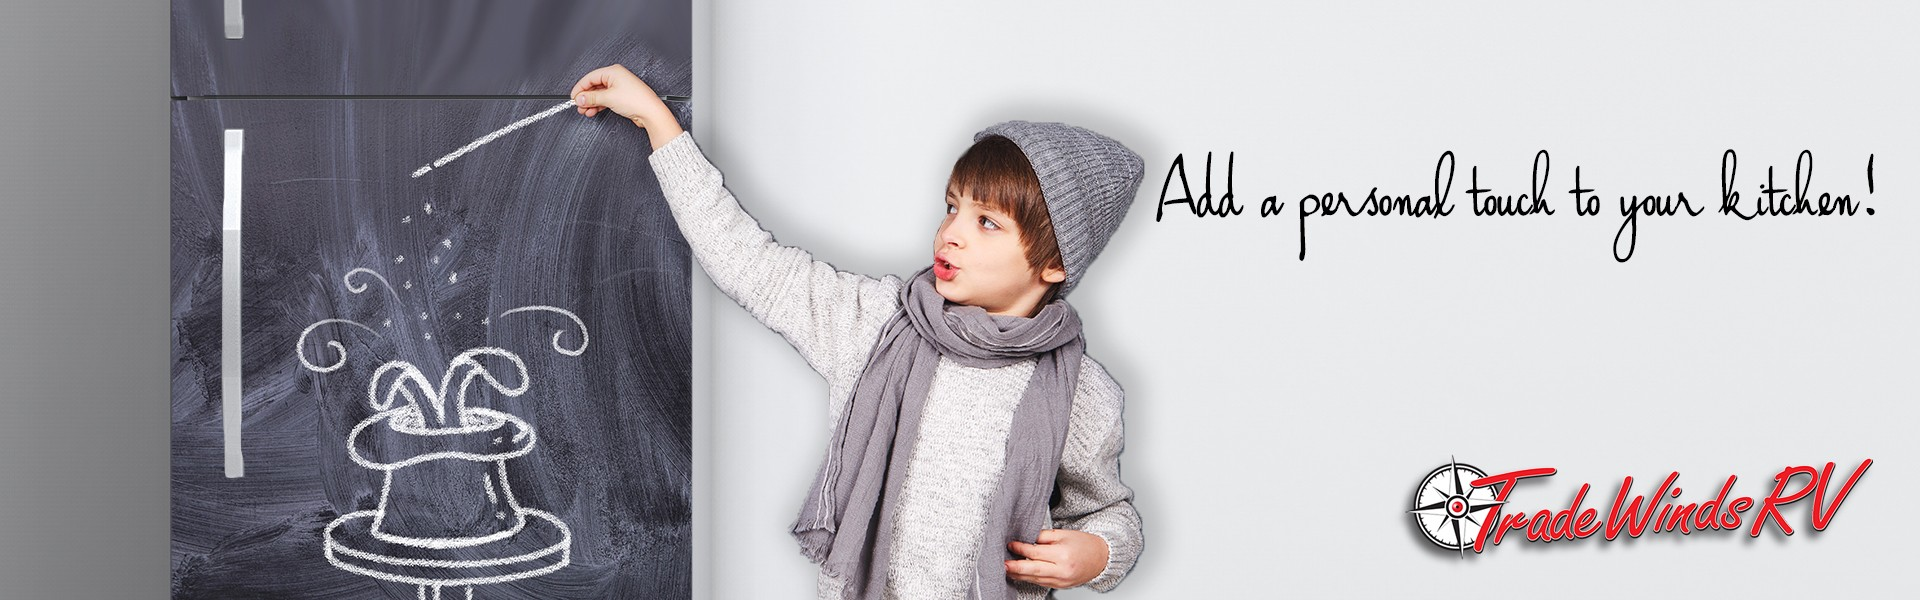 Add a personal touch to your kitchen! Boy drawing with chalk on fridge.